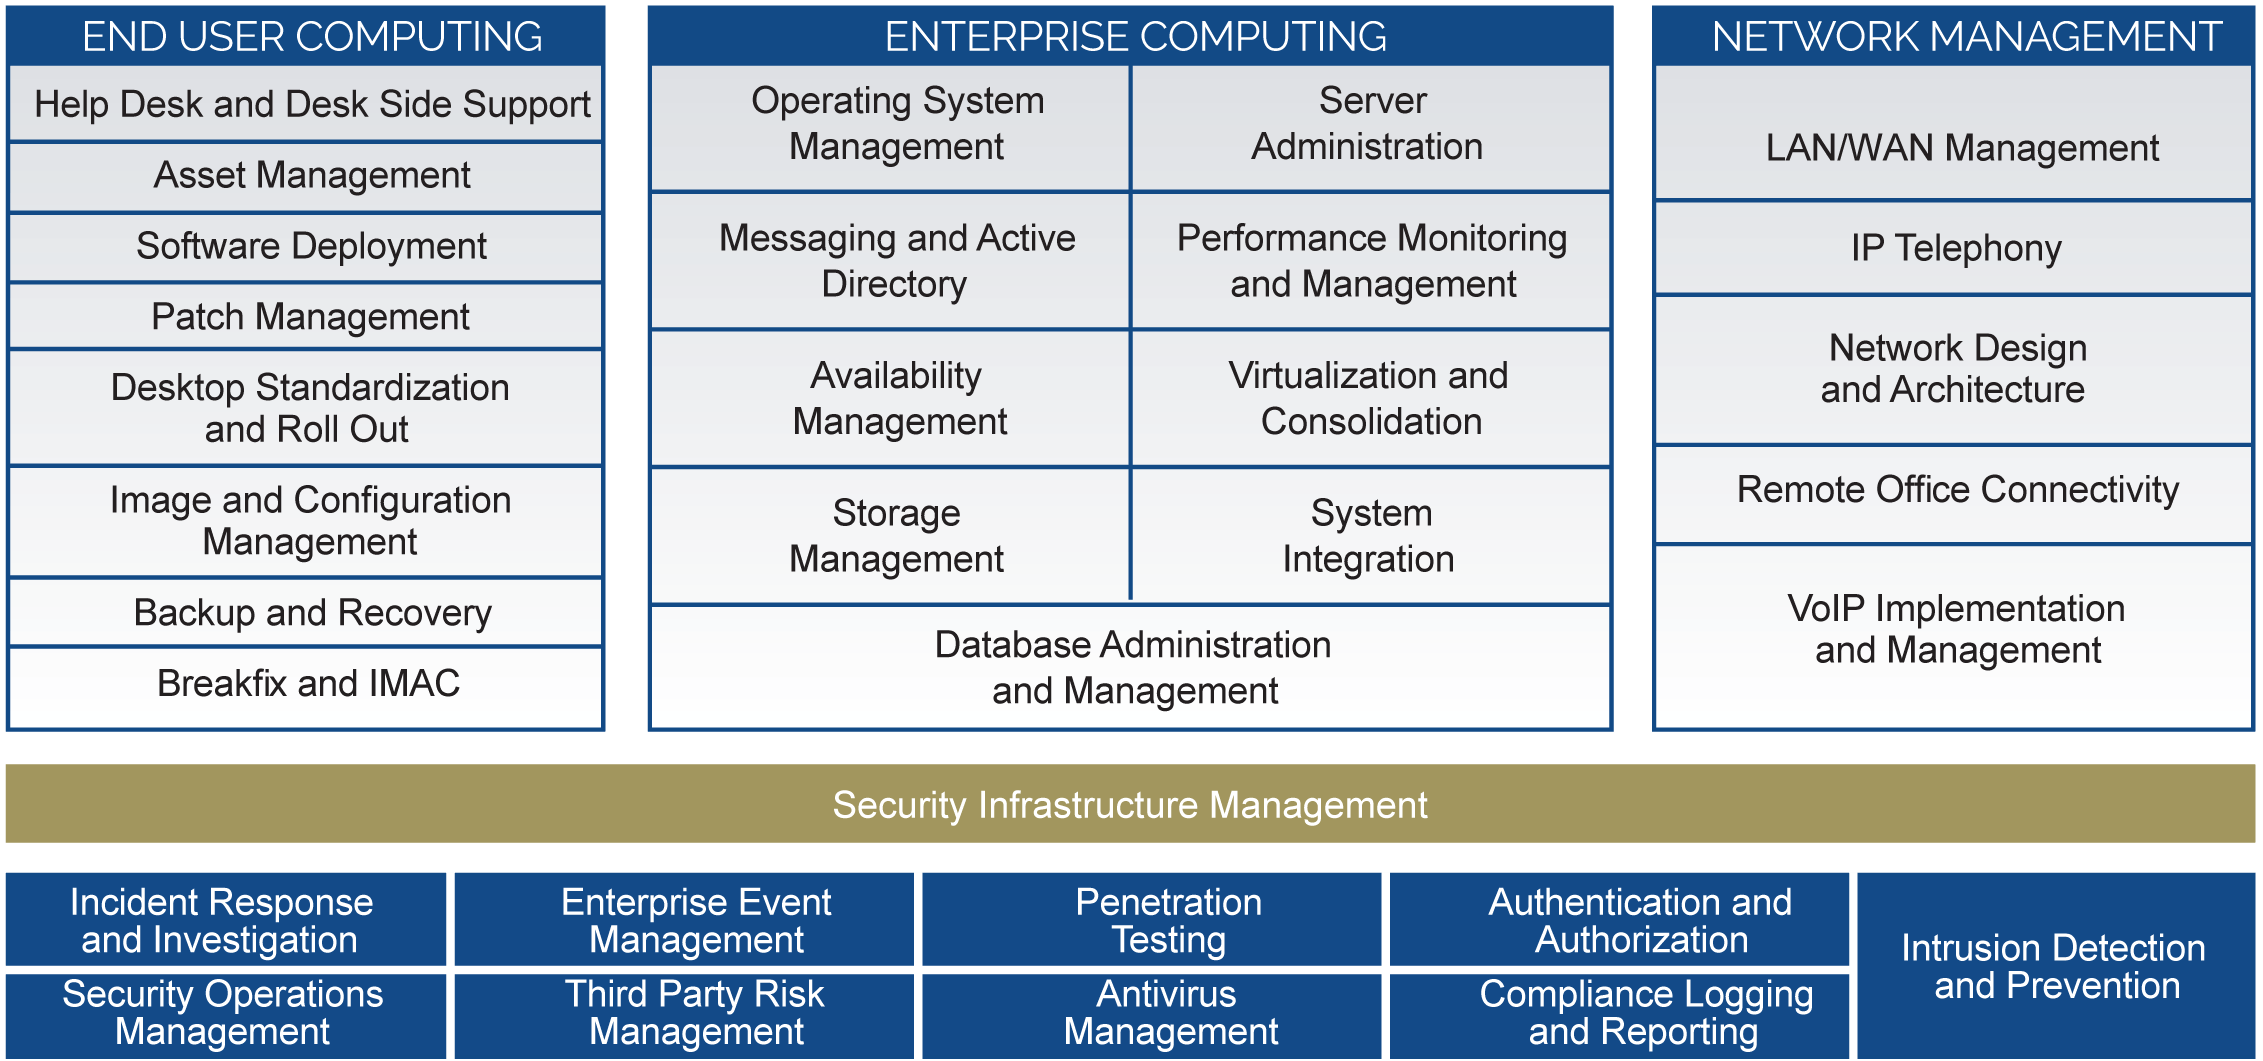 IT Infrastructure Services Image